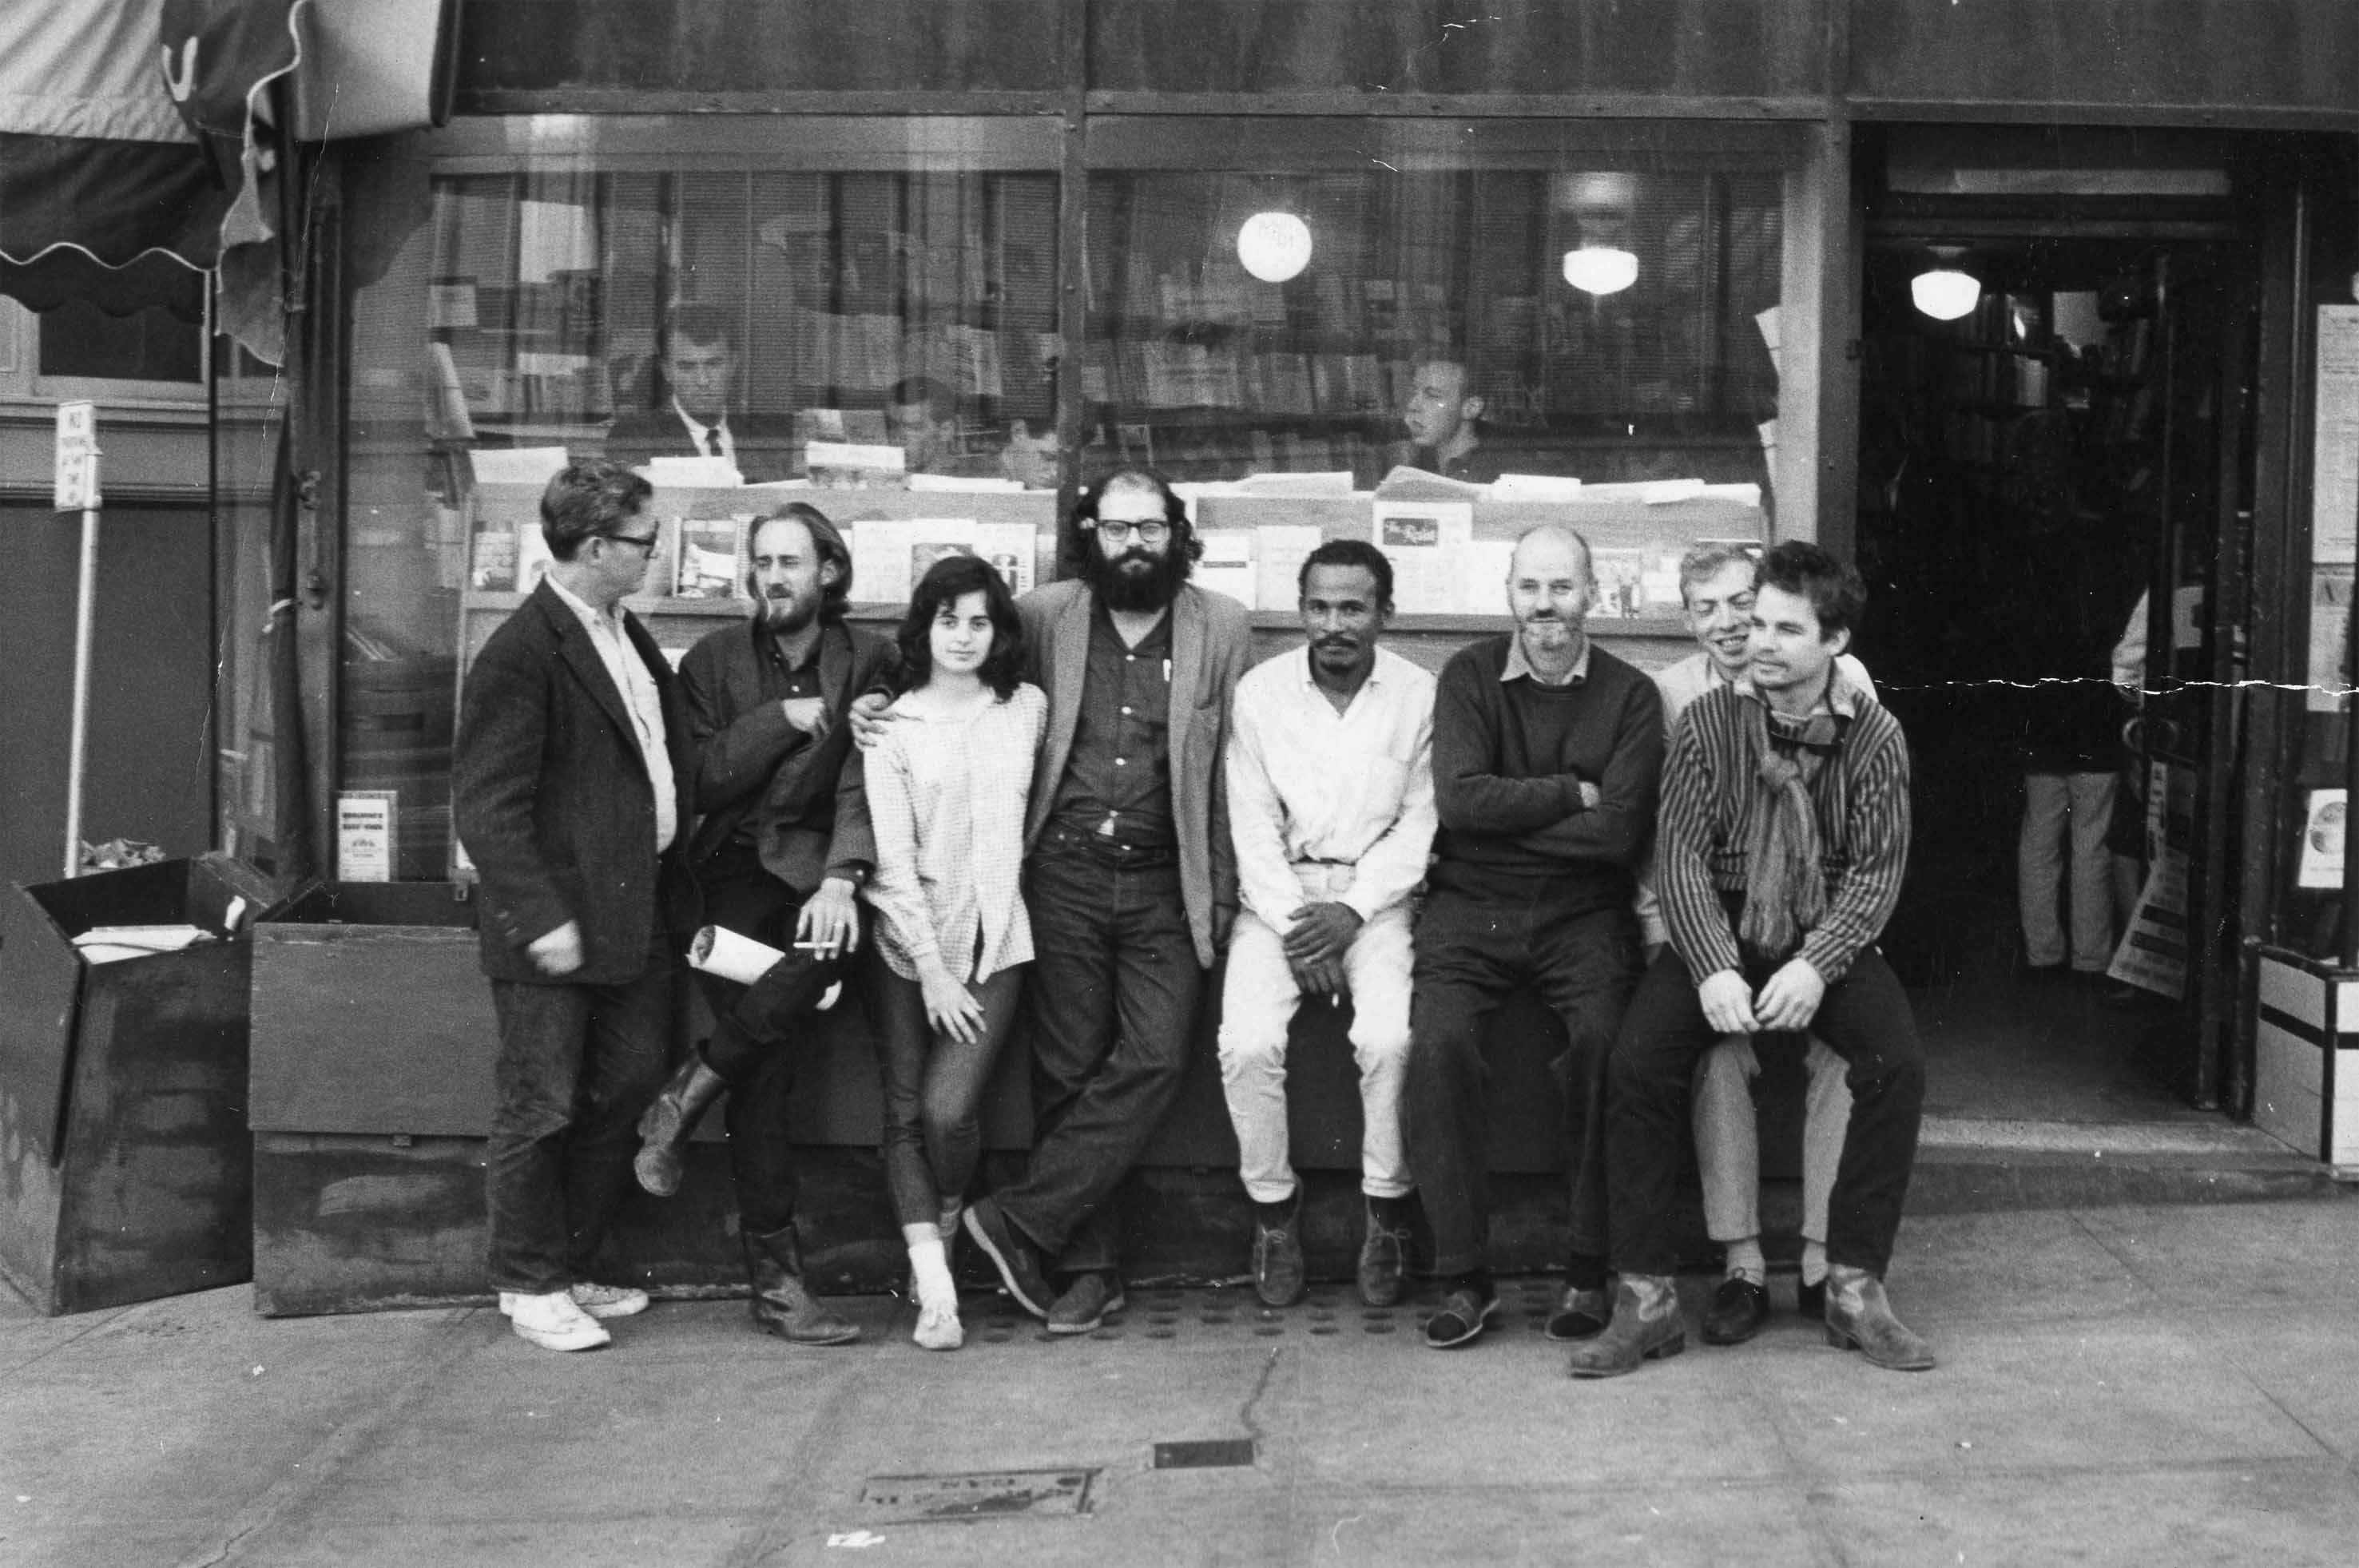 Allen Ginsberg, Lawrence Ferlinghetti & friends at City Lights Bookstore, 1963. Courtesy City Lights